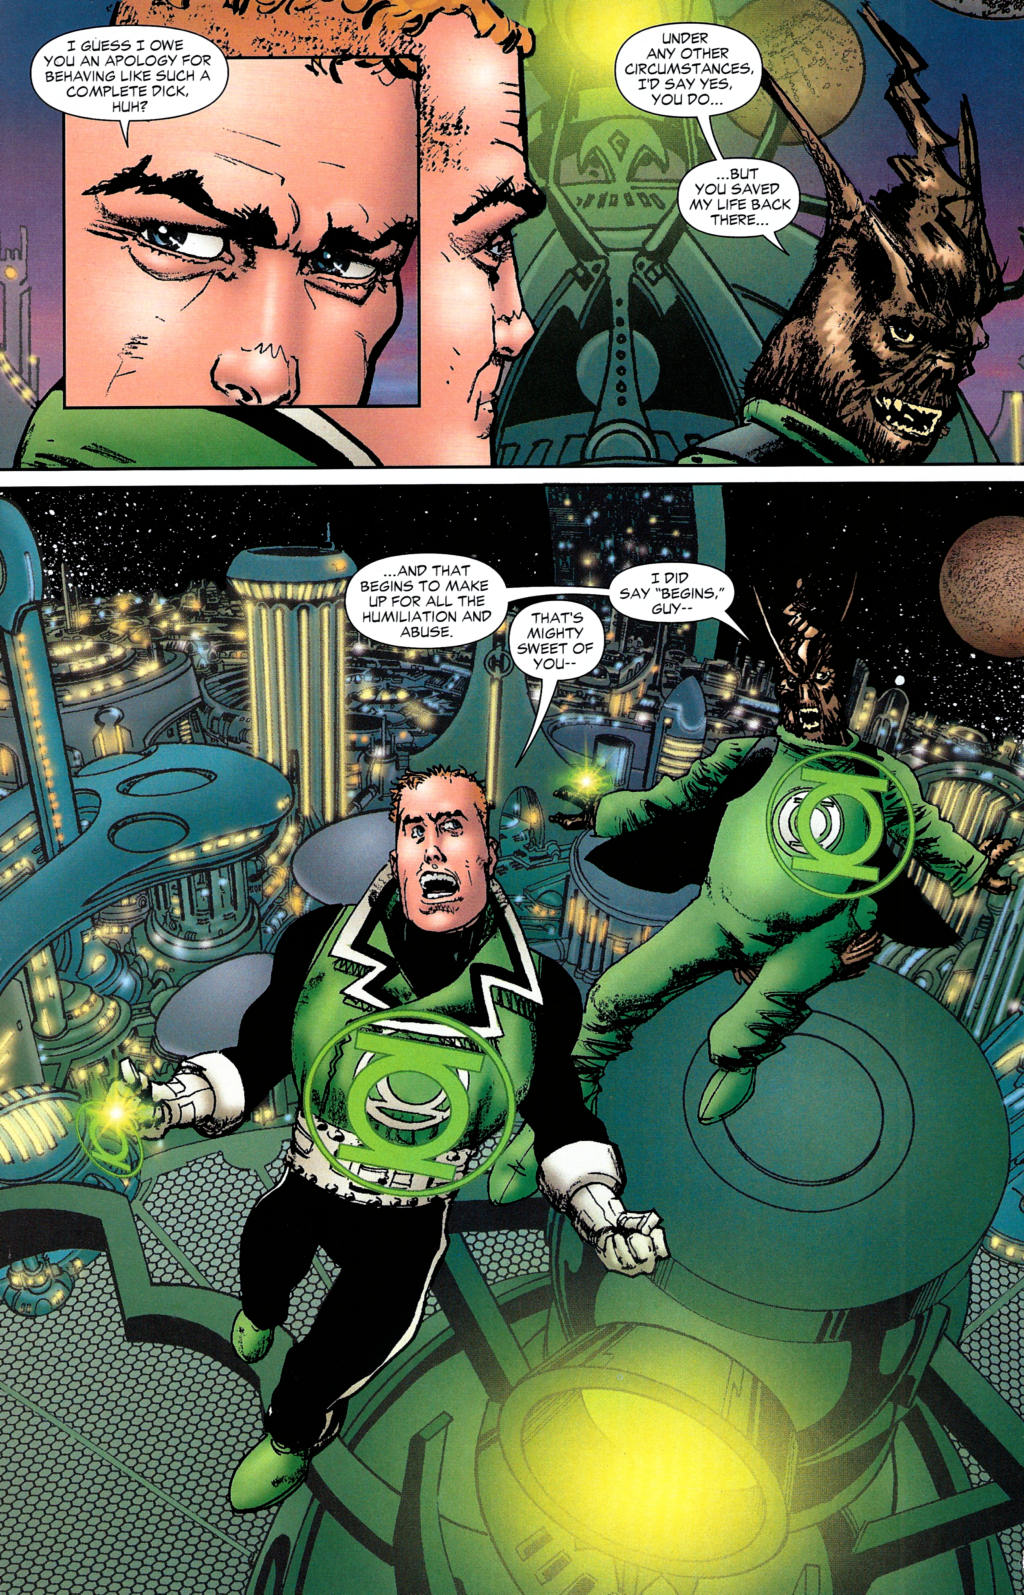 Read online Guy Gardner: Collateral Damage comic -  Issue #2 - 40